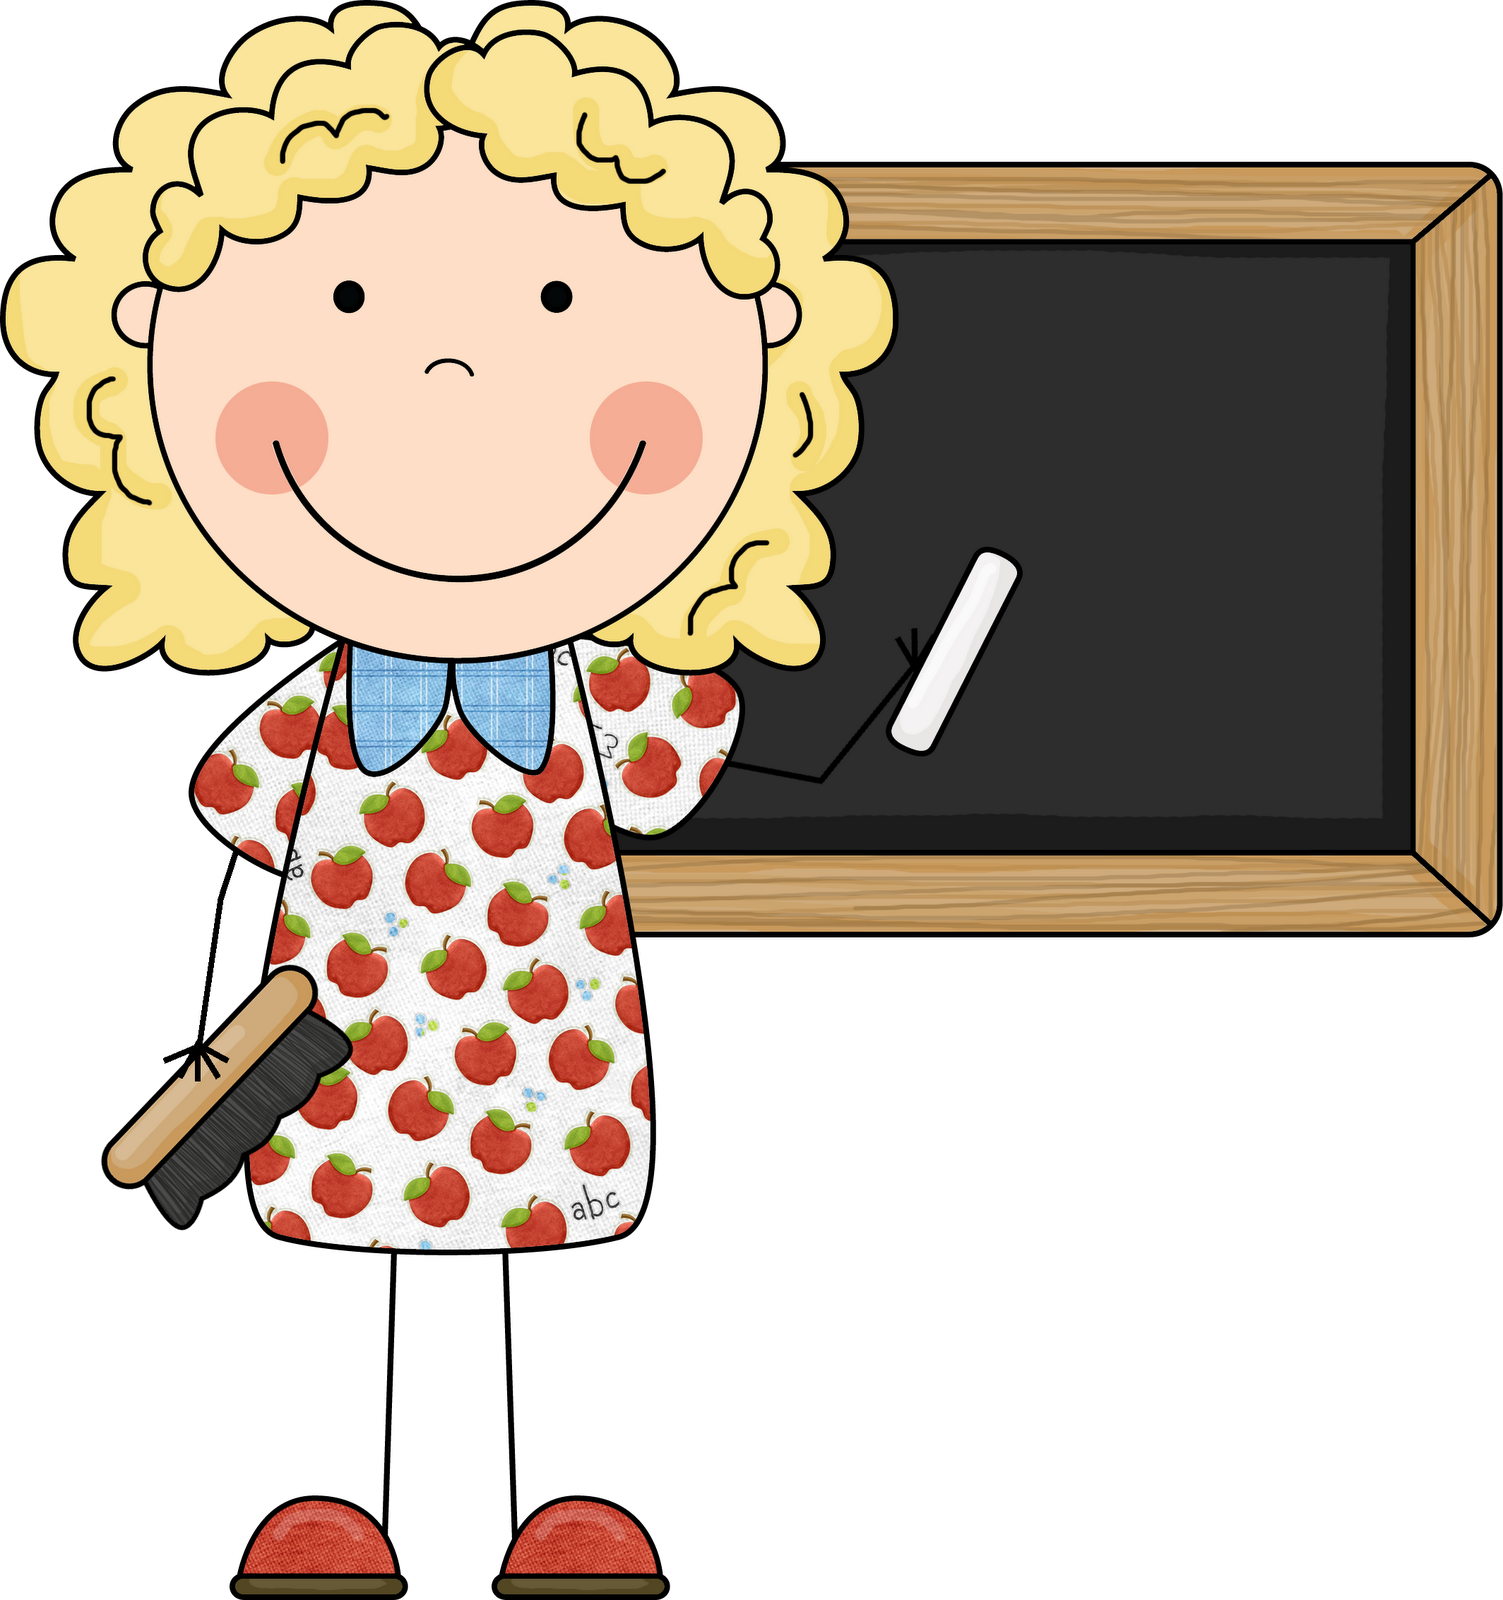 Teachers free clip art graphic freeuse download 28+ Collection of Cute Clipart For Teachers Free | High quality ... graphic freeuse download